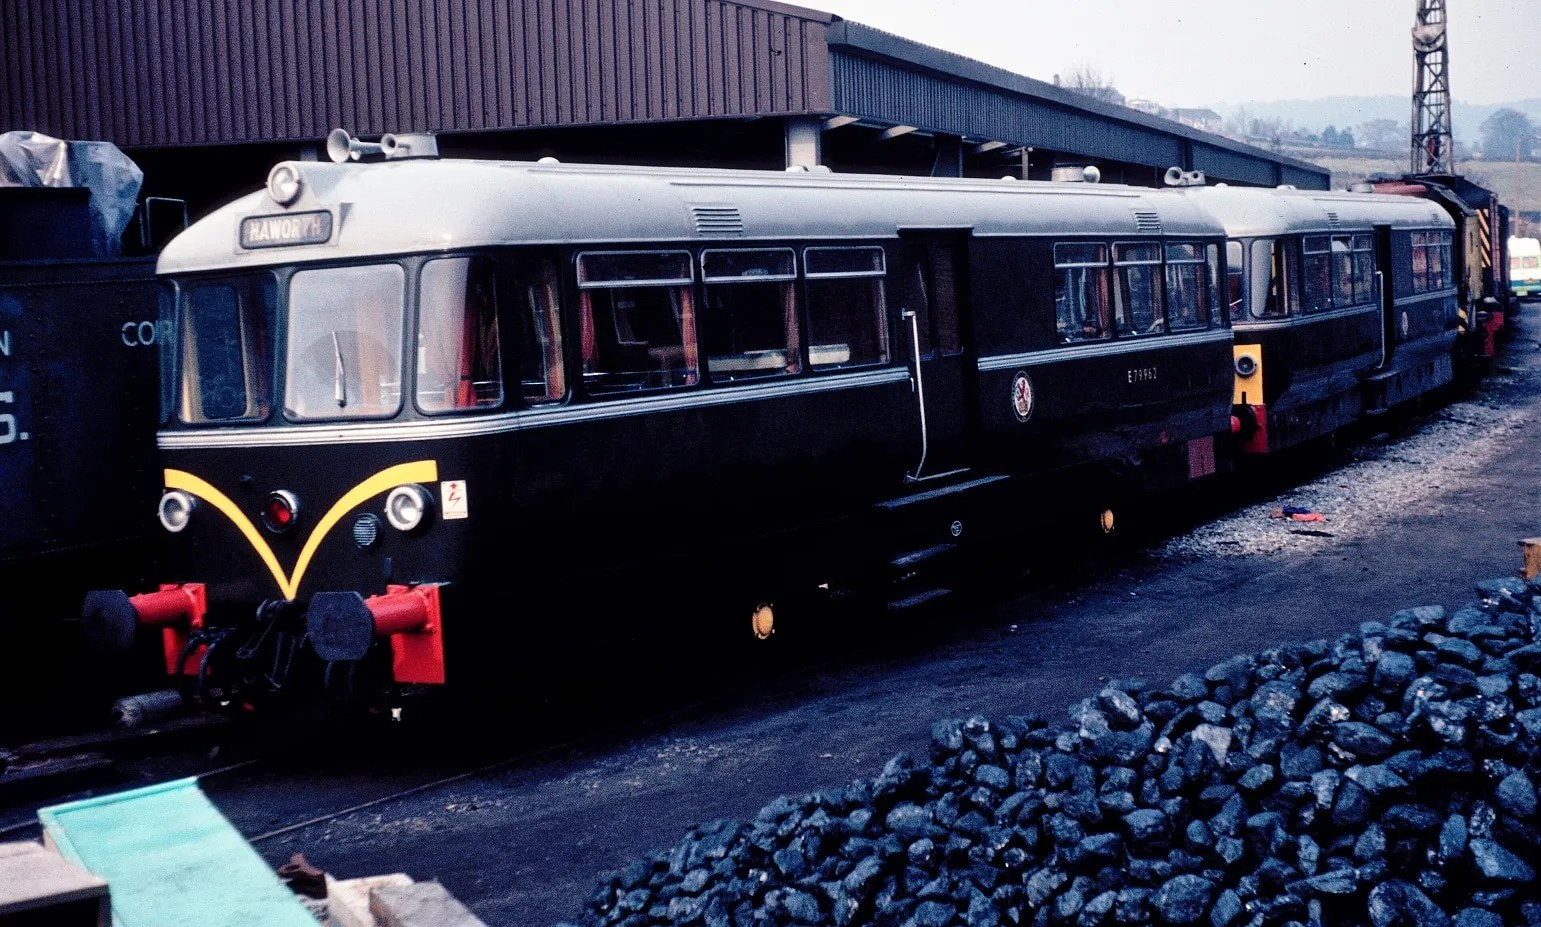 Haworth Yard - waggon and maschinenbau - diesel railbus - Class S160 tender - railway photographs